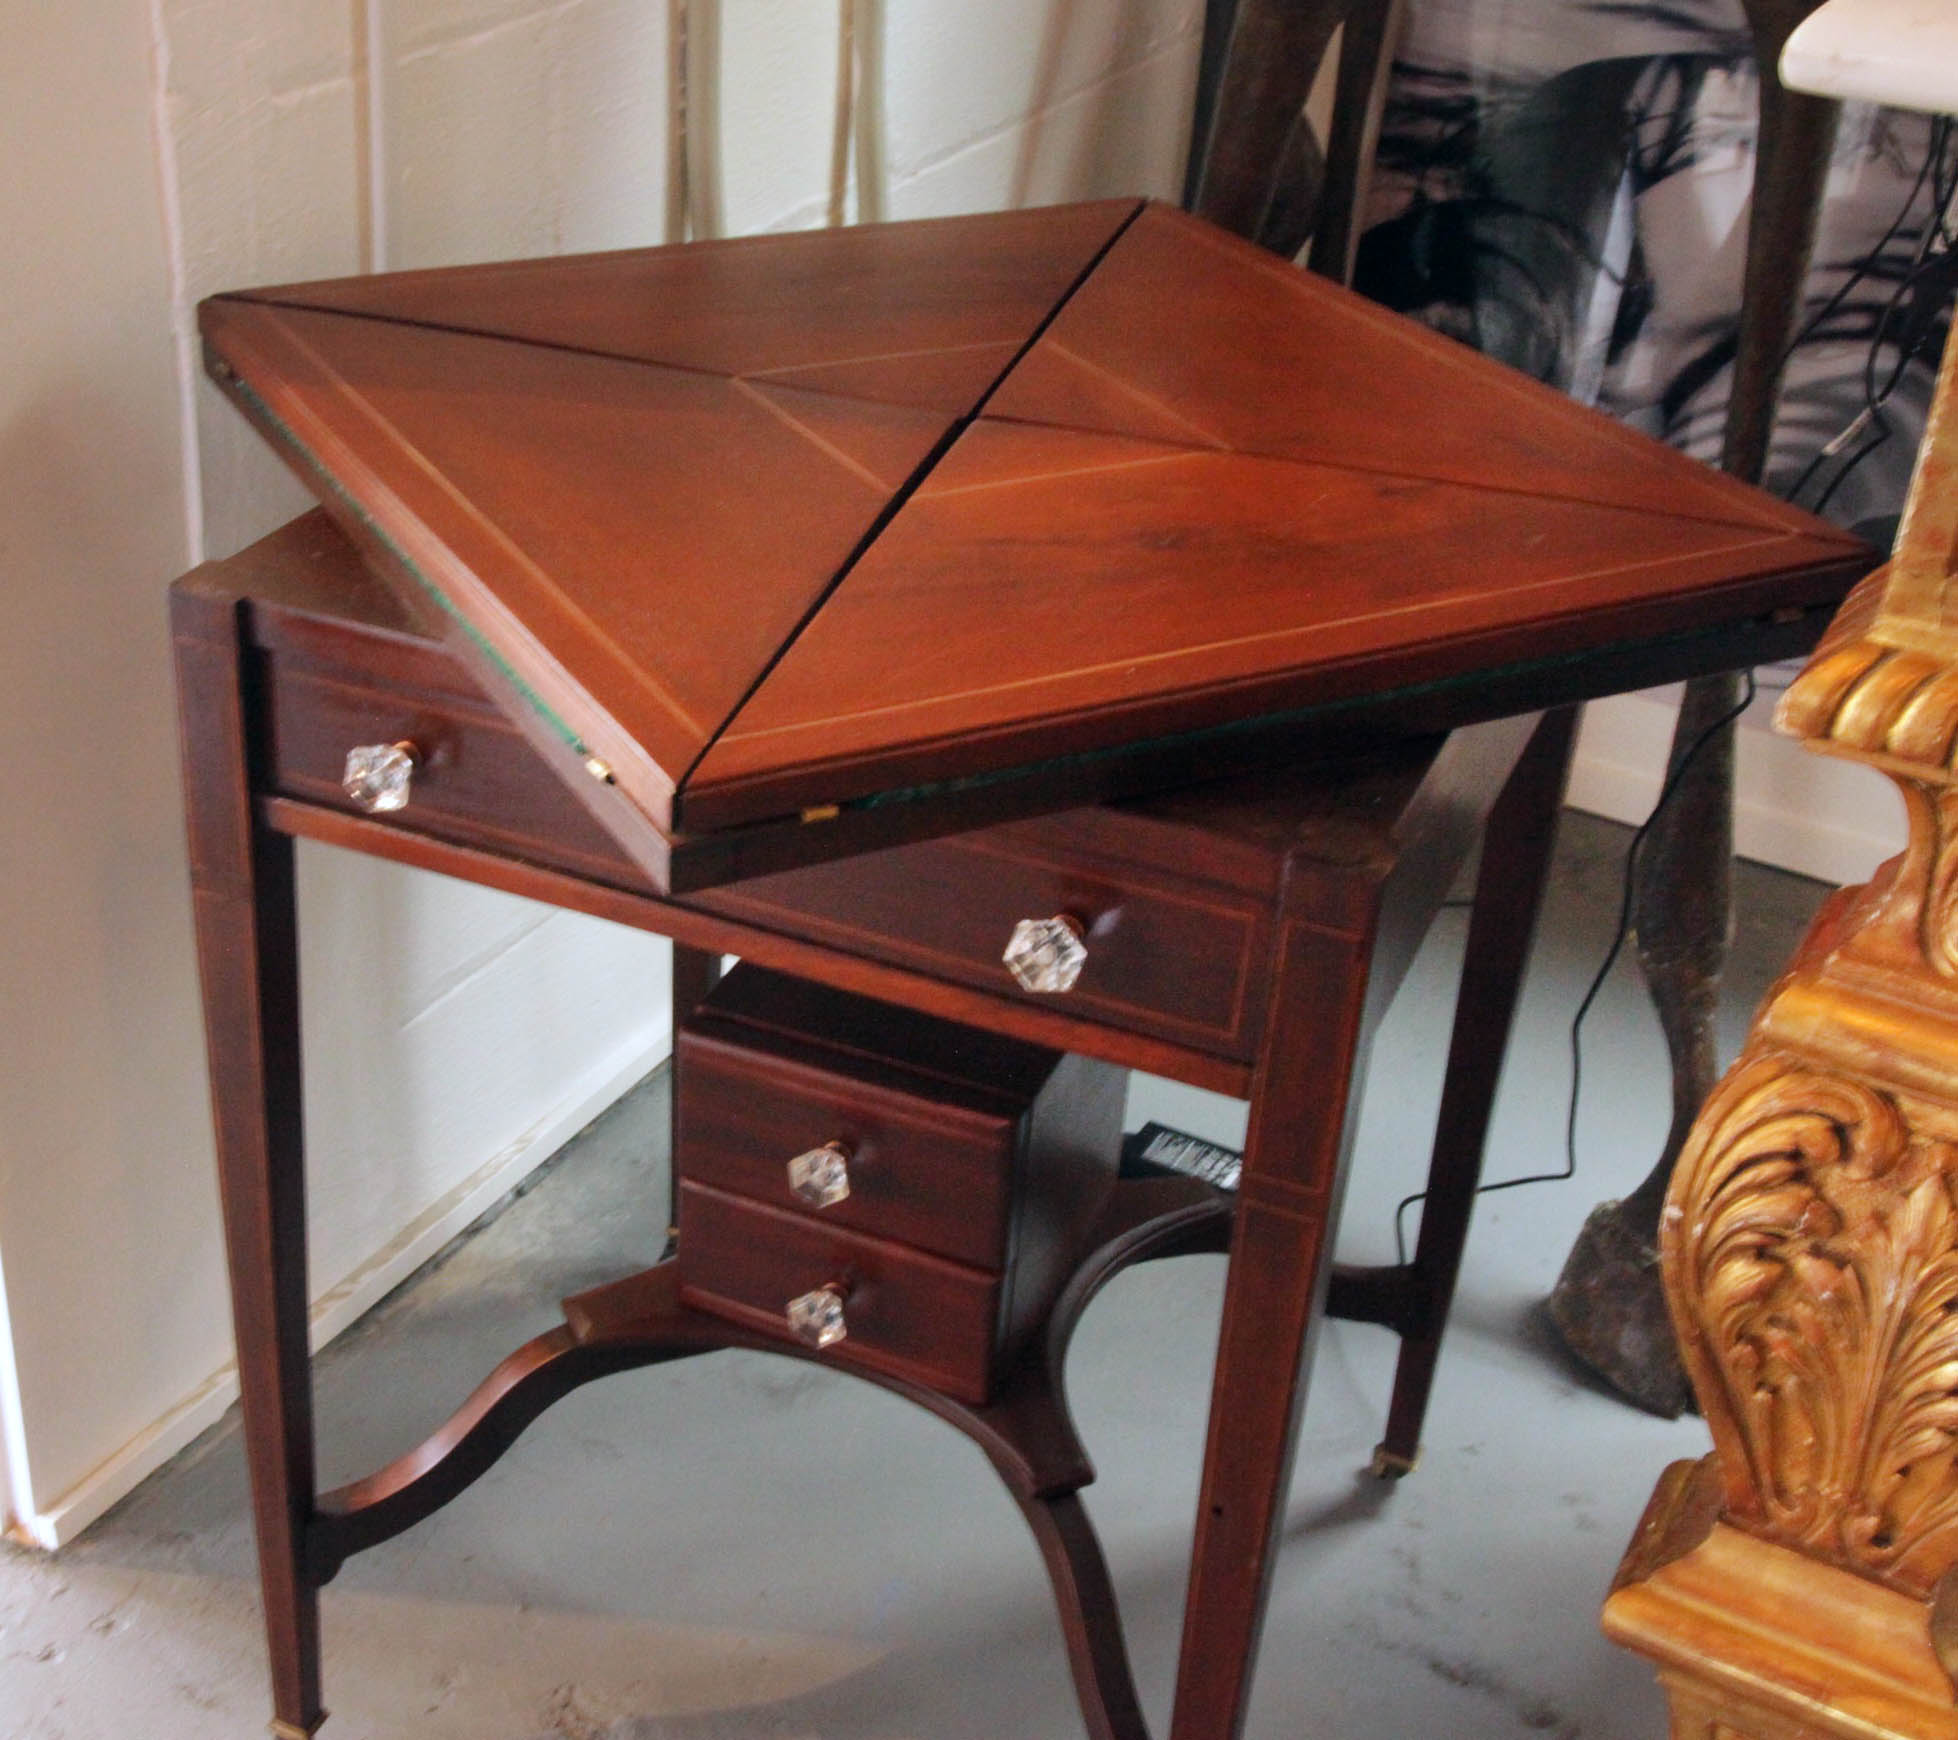 Antique Edwardian Mahogany Envelope Game Table after some loving care